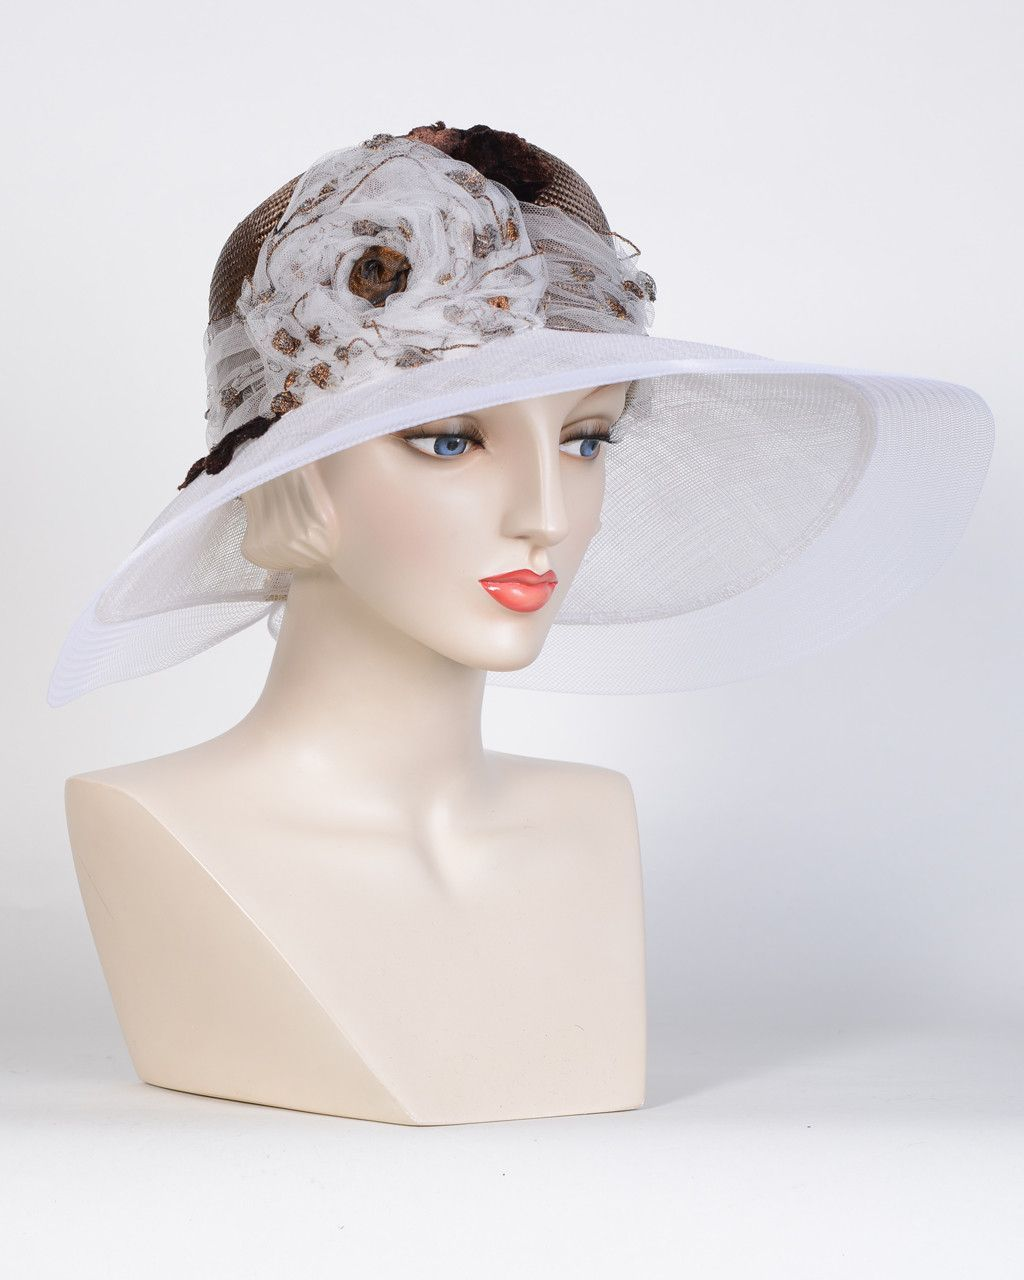 2ebd0b2d7 Louise Green hat – Louise Green Millinery | Louise Green Spring ...